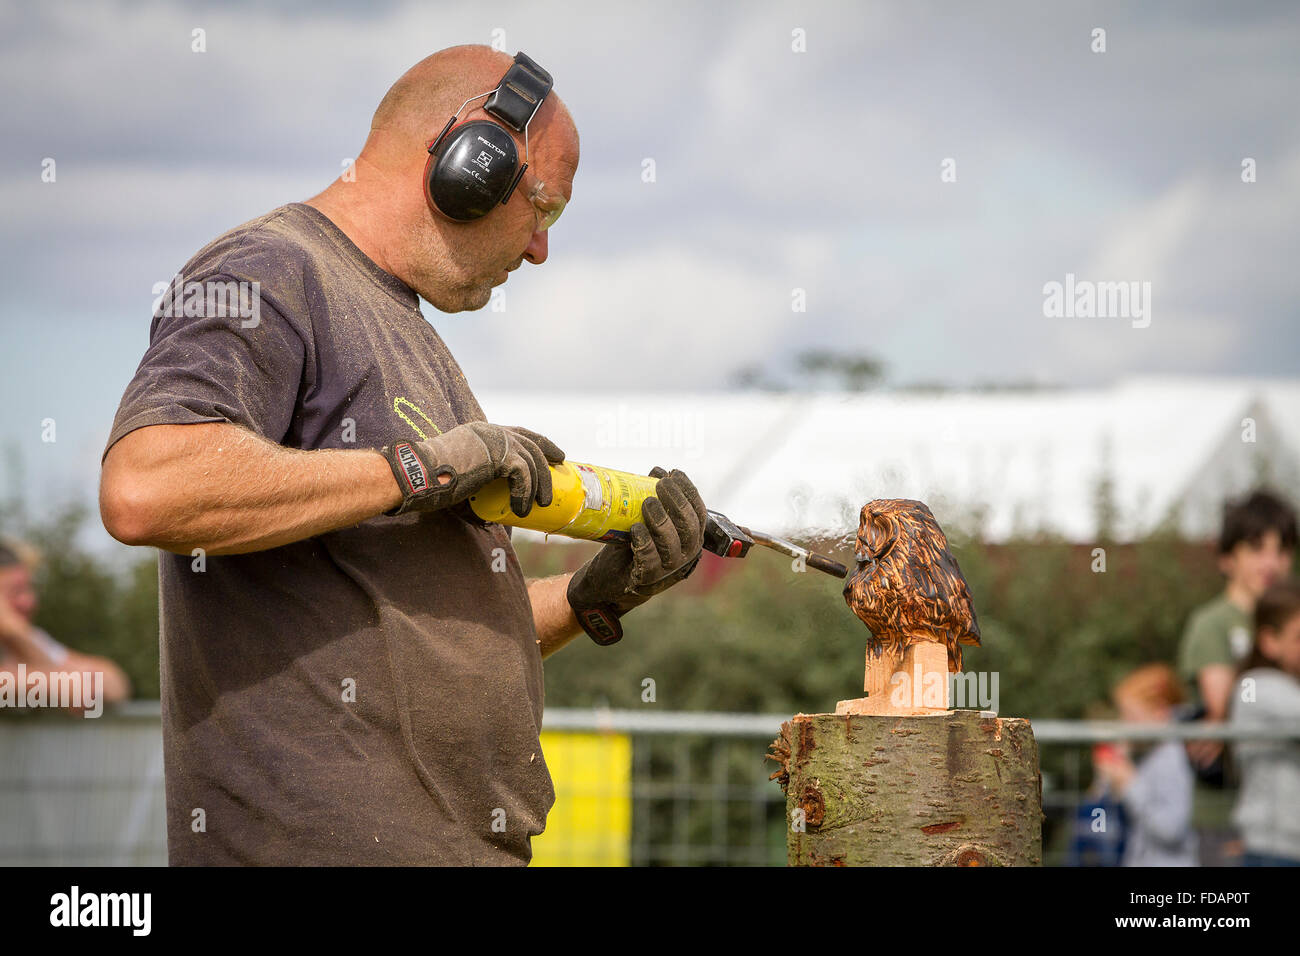 Chainsaw chain saw stihl stock photos